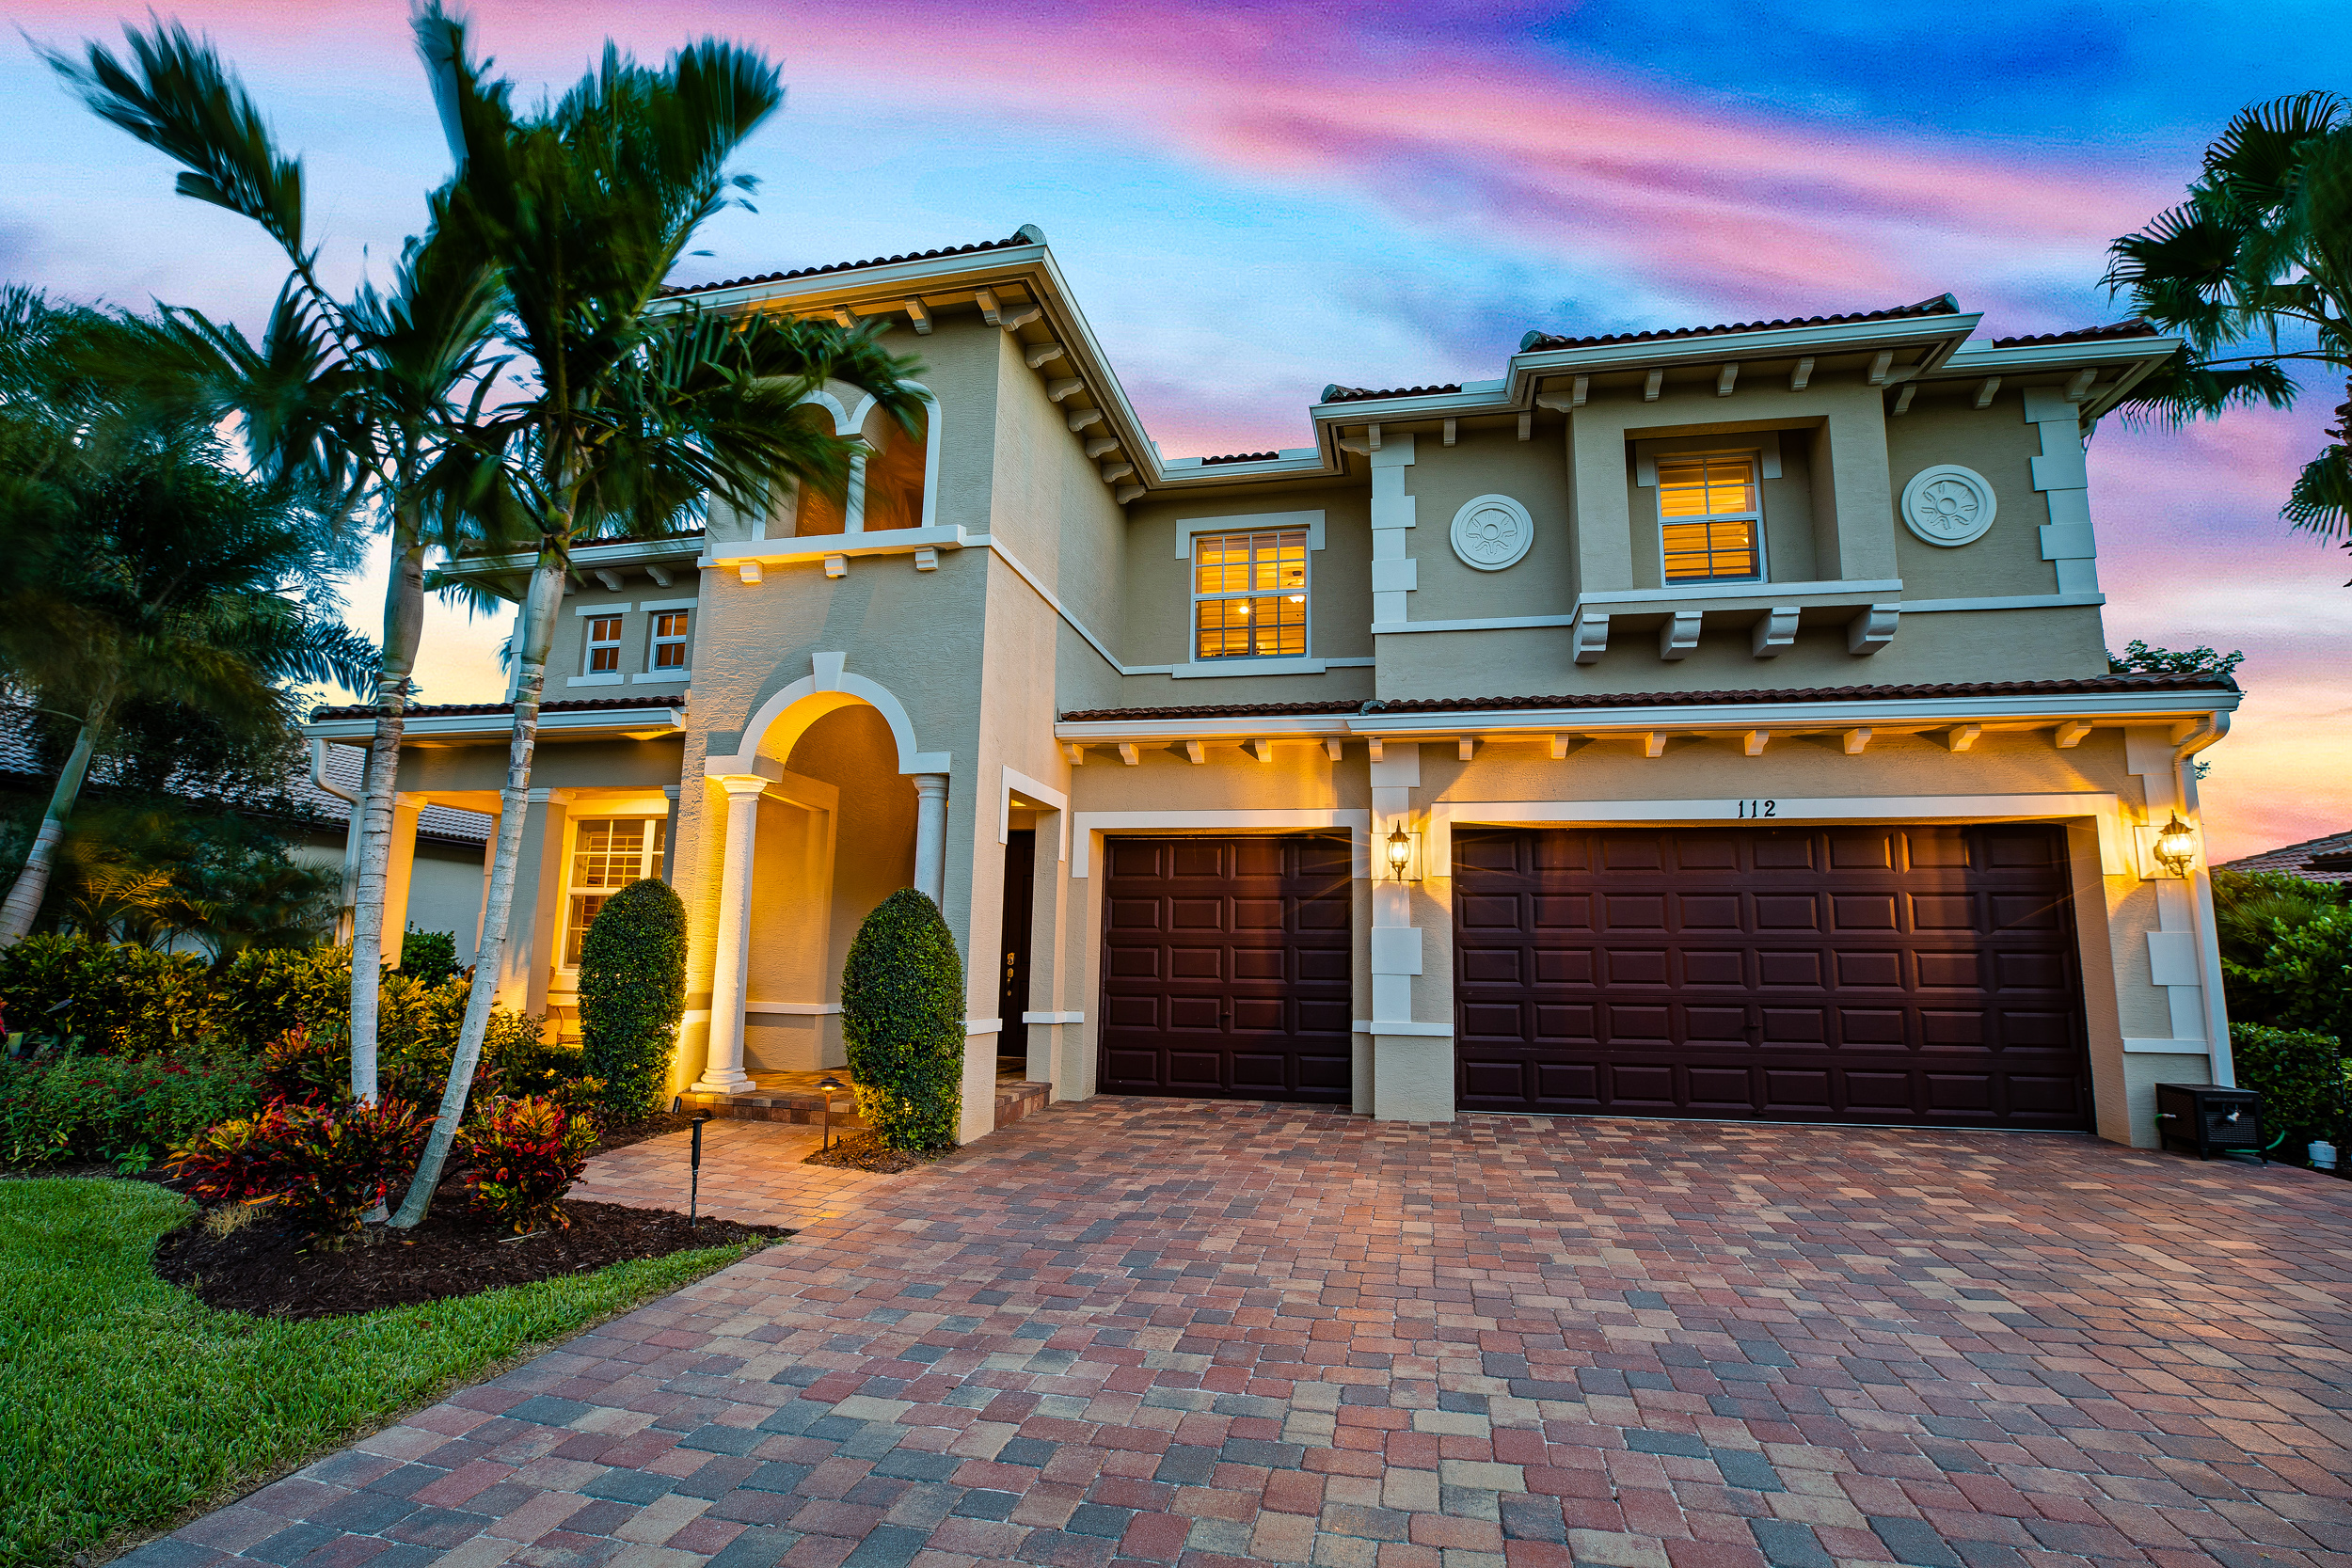 JUST LISTED! - 112 Casa Circle in Rialto of Jupiter has officially hit the market!5 bedroom   5 bathrooms   4,315 sq. ft.